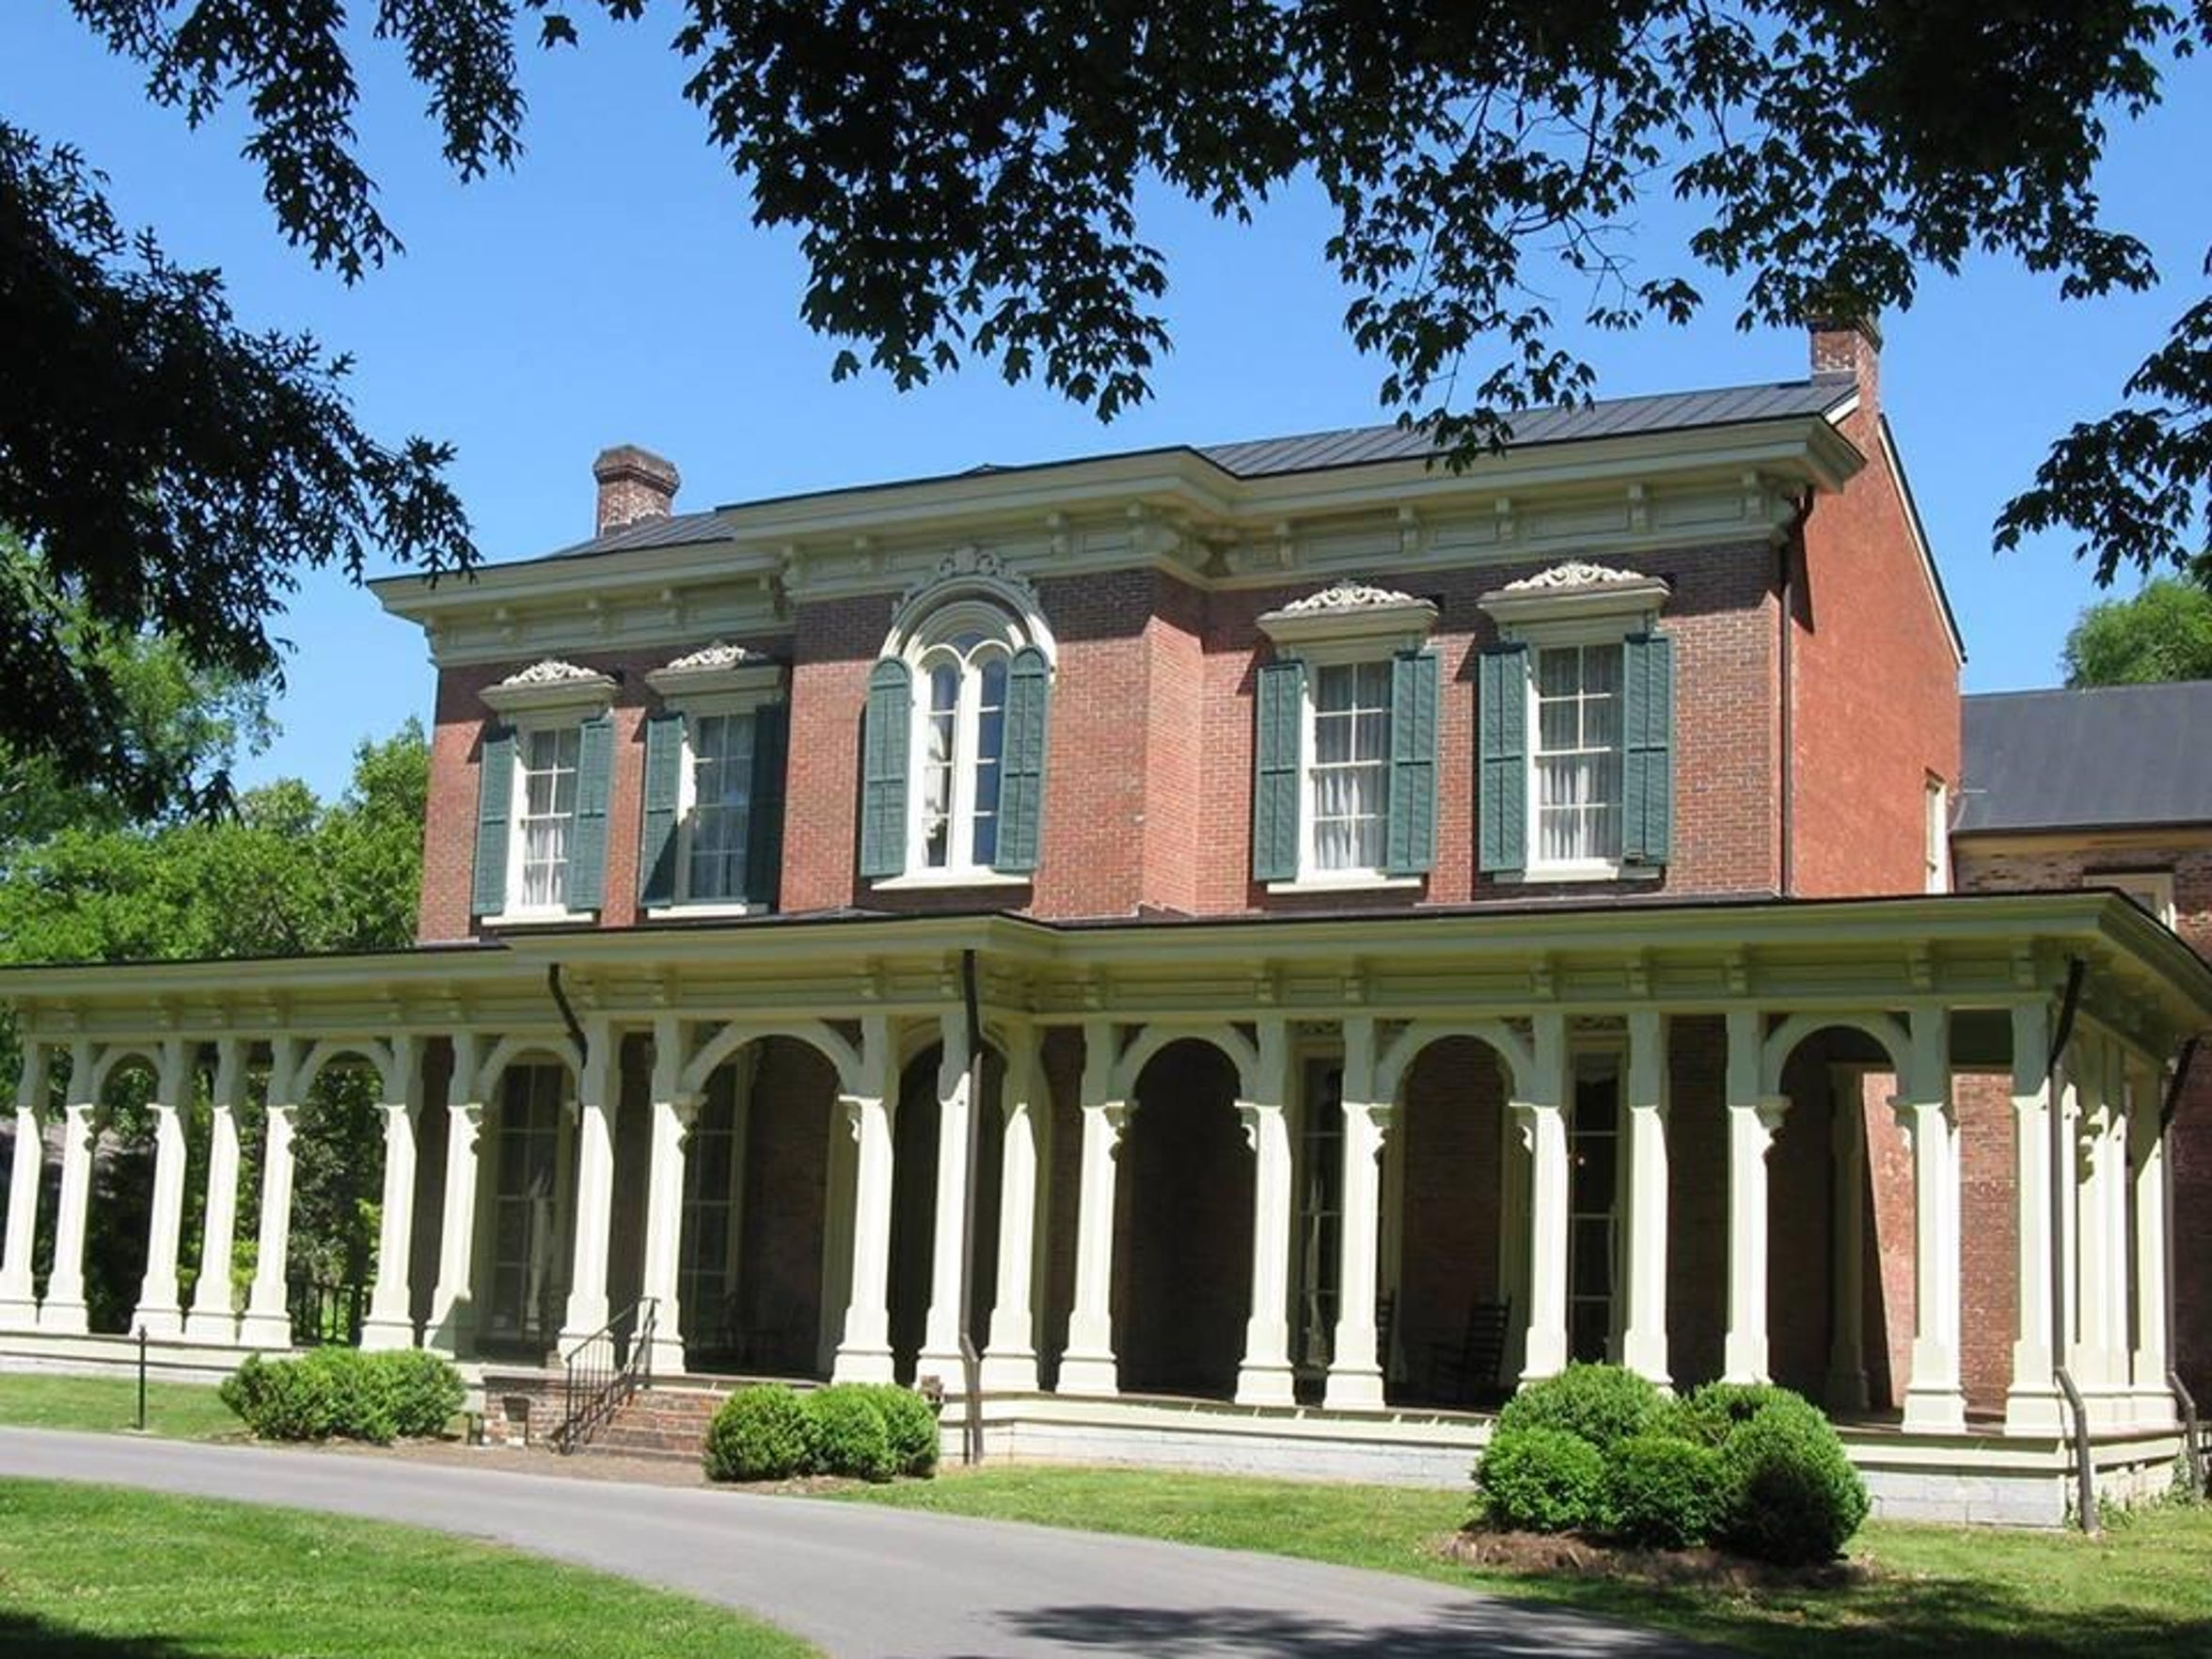 Oaklands Historic House Museum, 900 N. Maney Ave. in Murfreesboro, is the location for the second annual An Artisan Affair. There will also be live music. Proceeds benefit After Breast Cancer program through the YMCA.